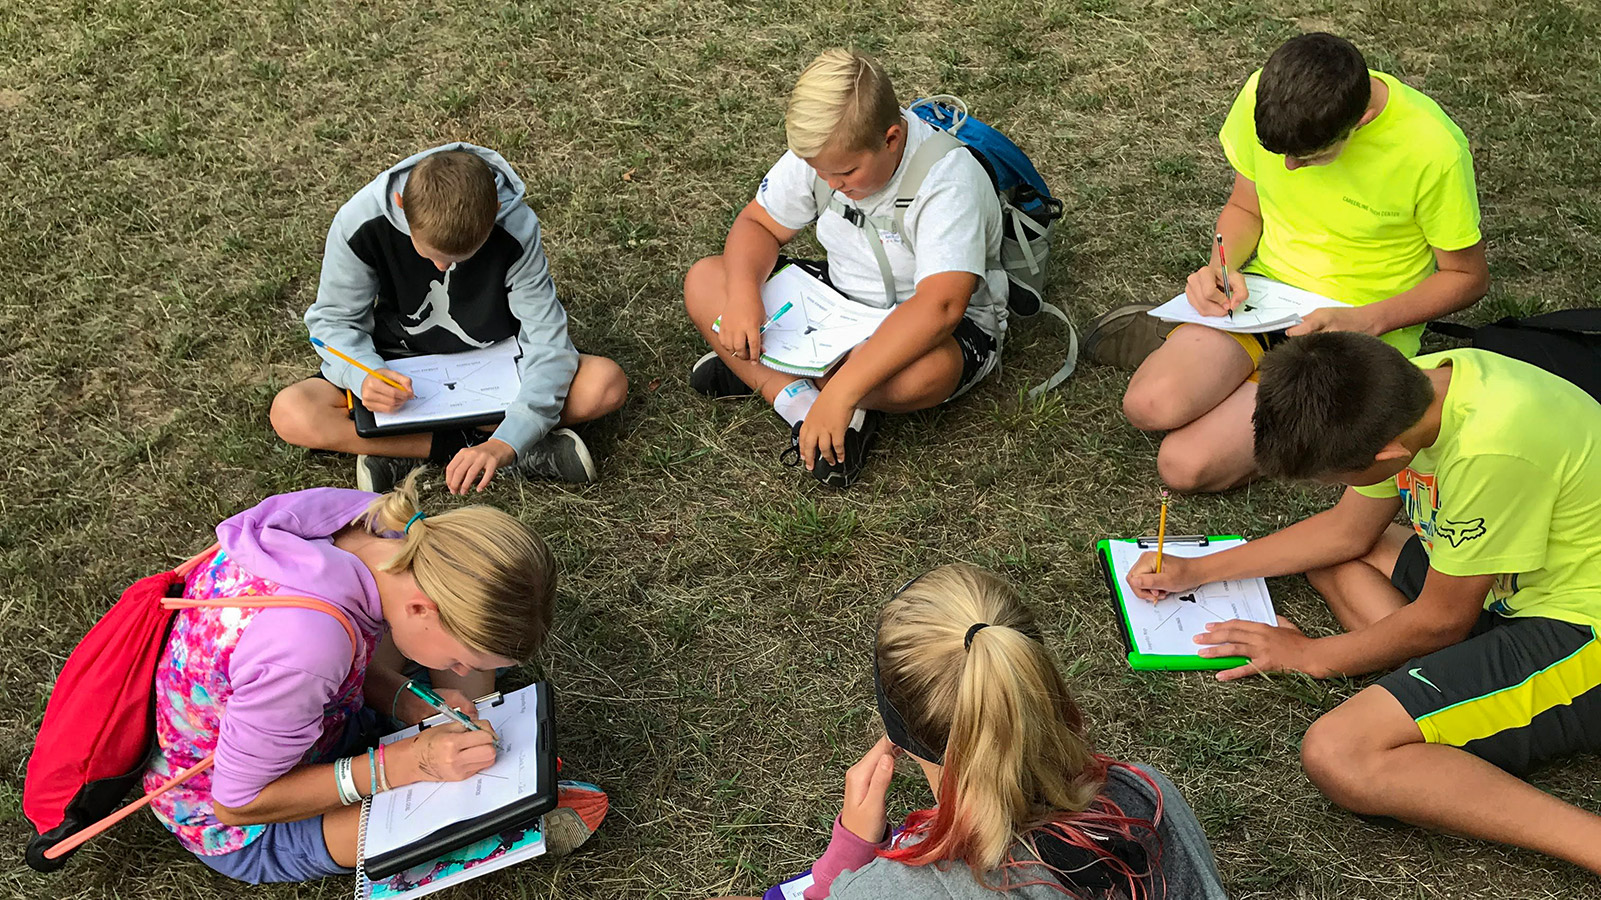 Children learning in a group outdoors